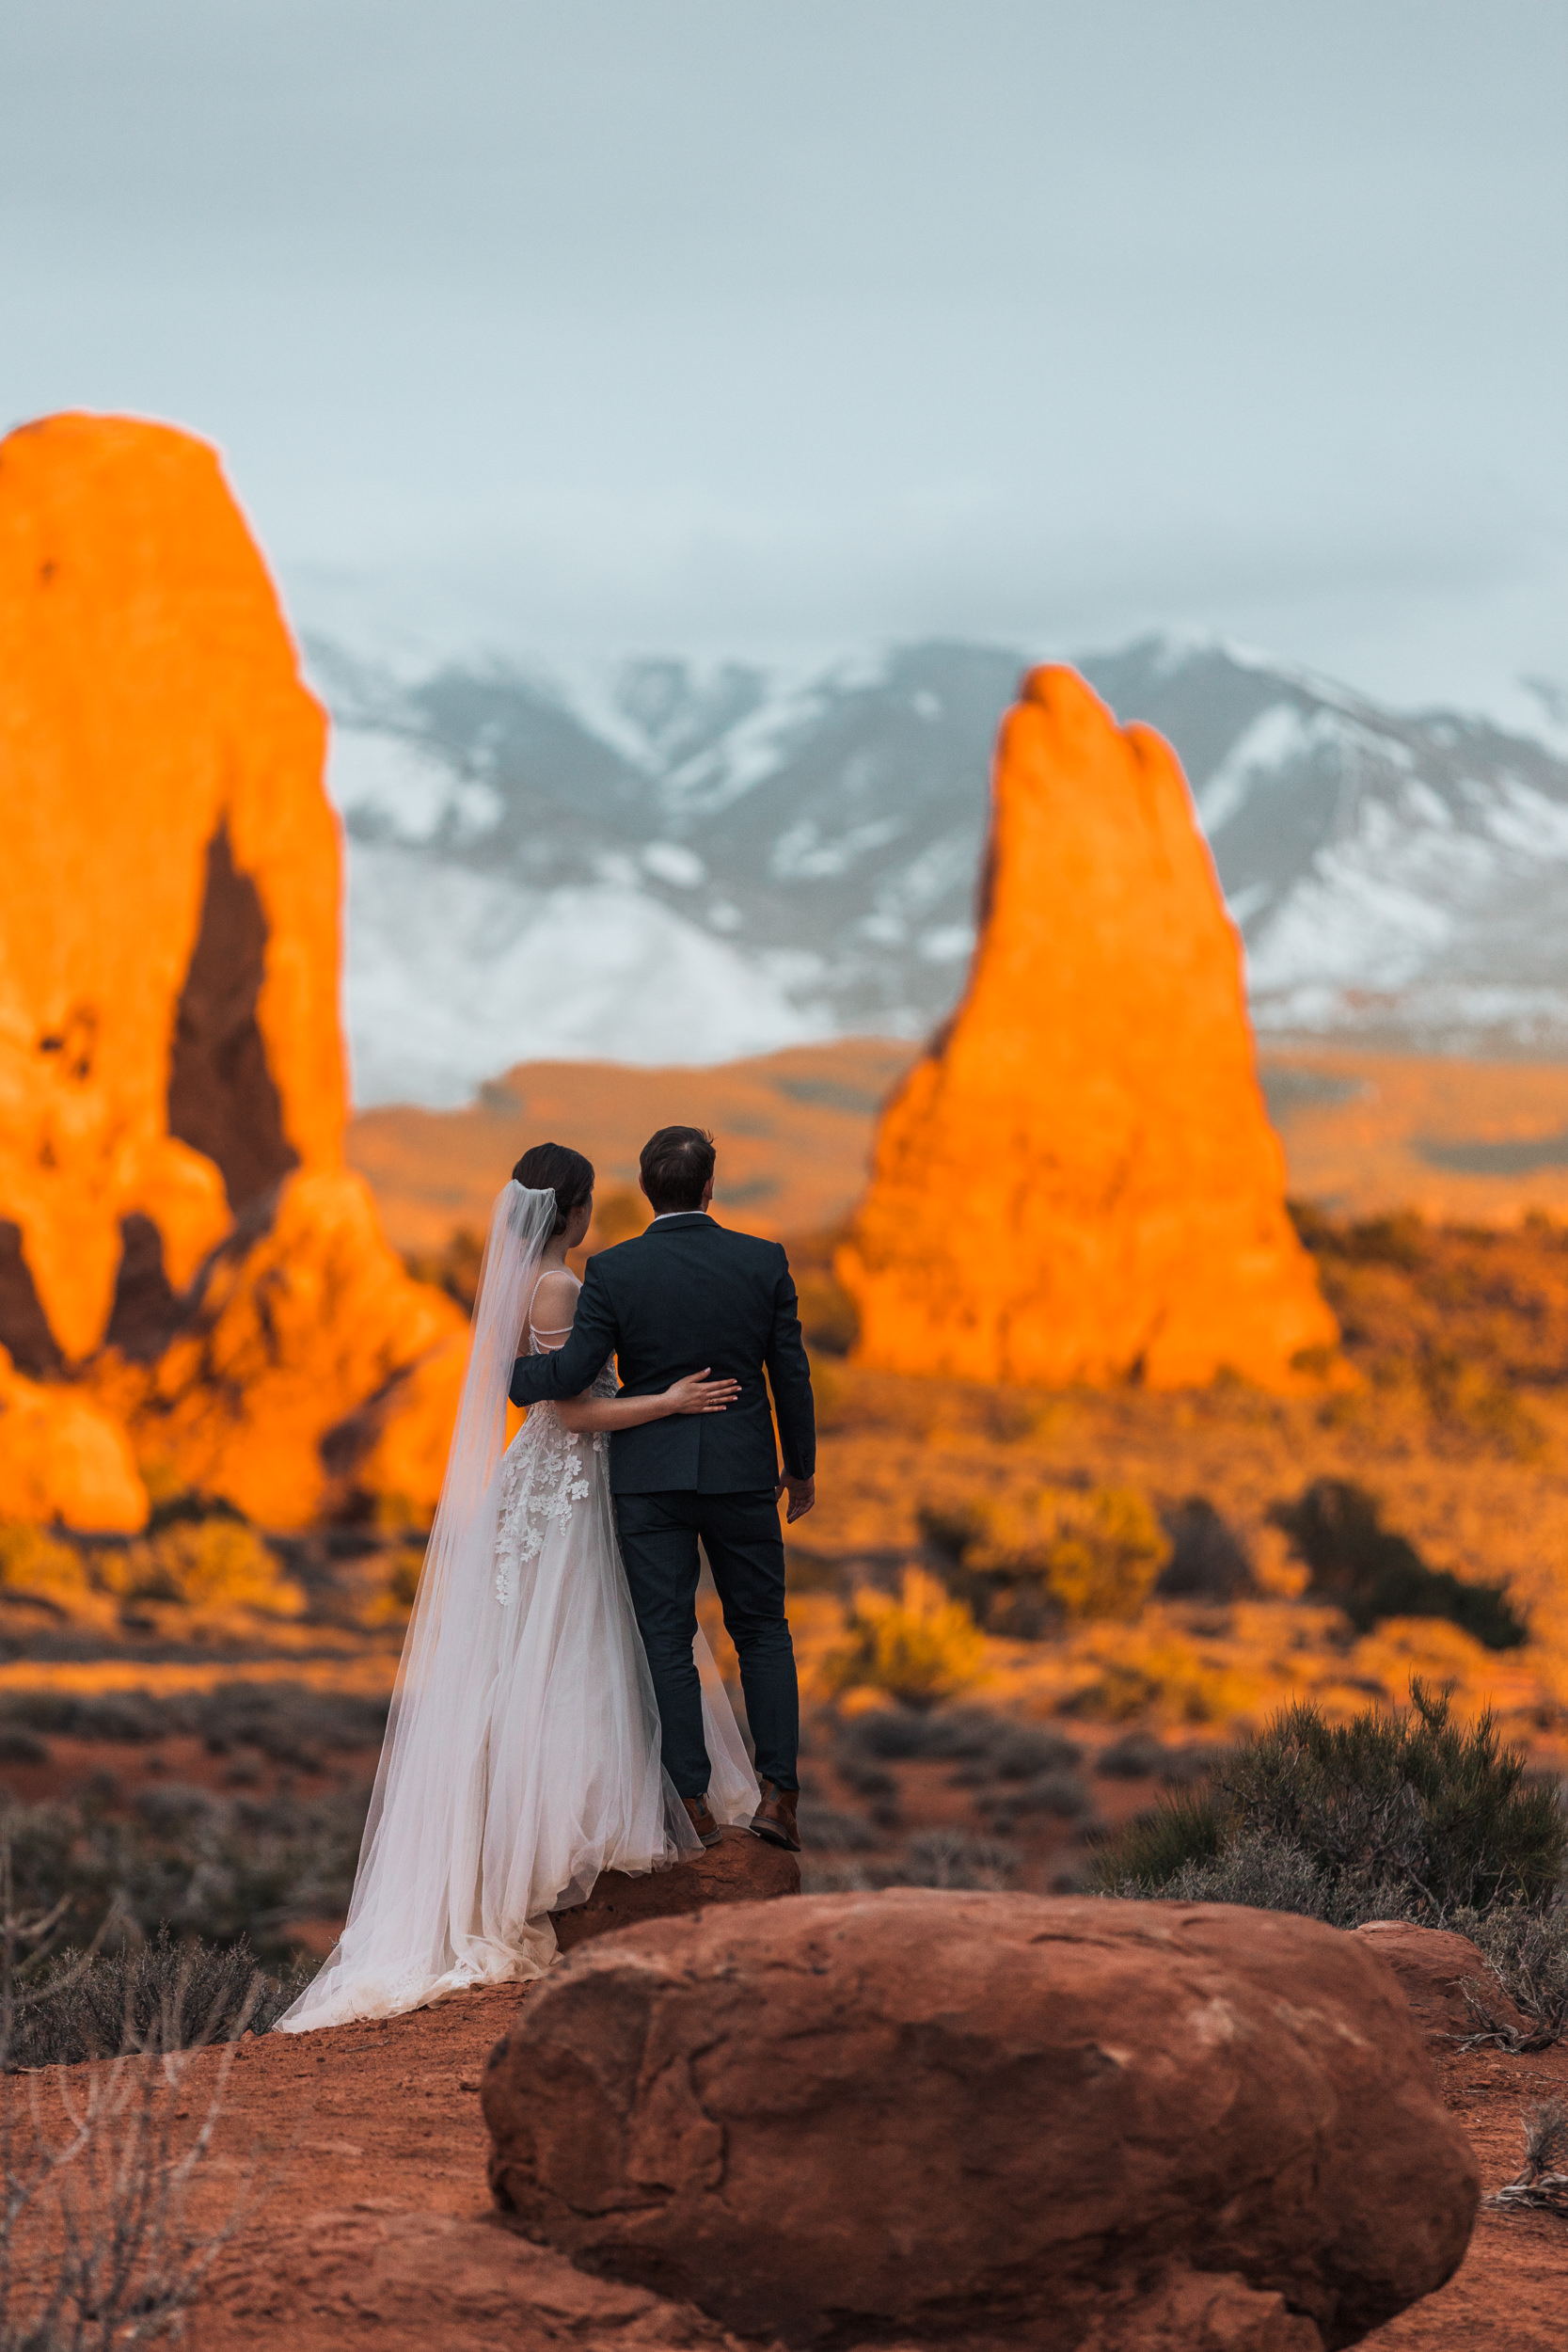 As the day winds down in Arches National Park, the light puts on a showcase with the red rocks. Quite a way to end your wedding day.